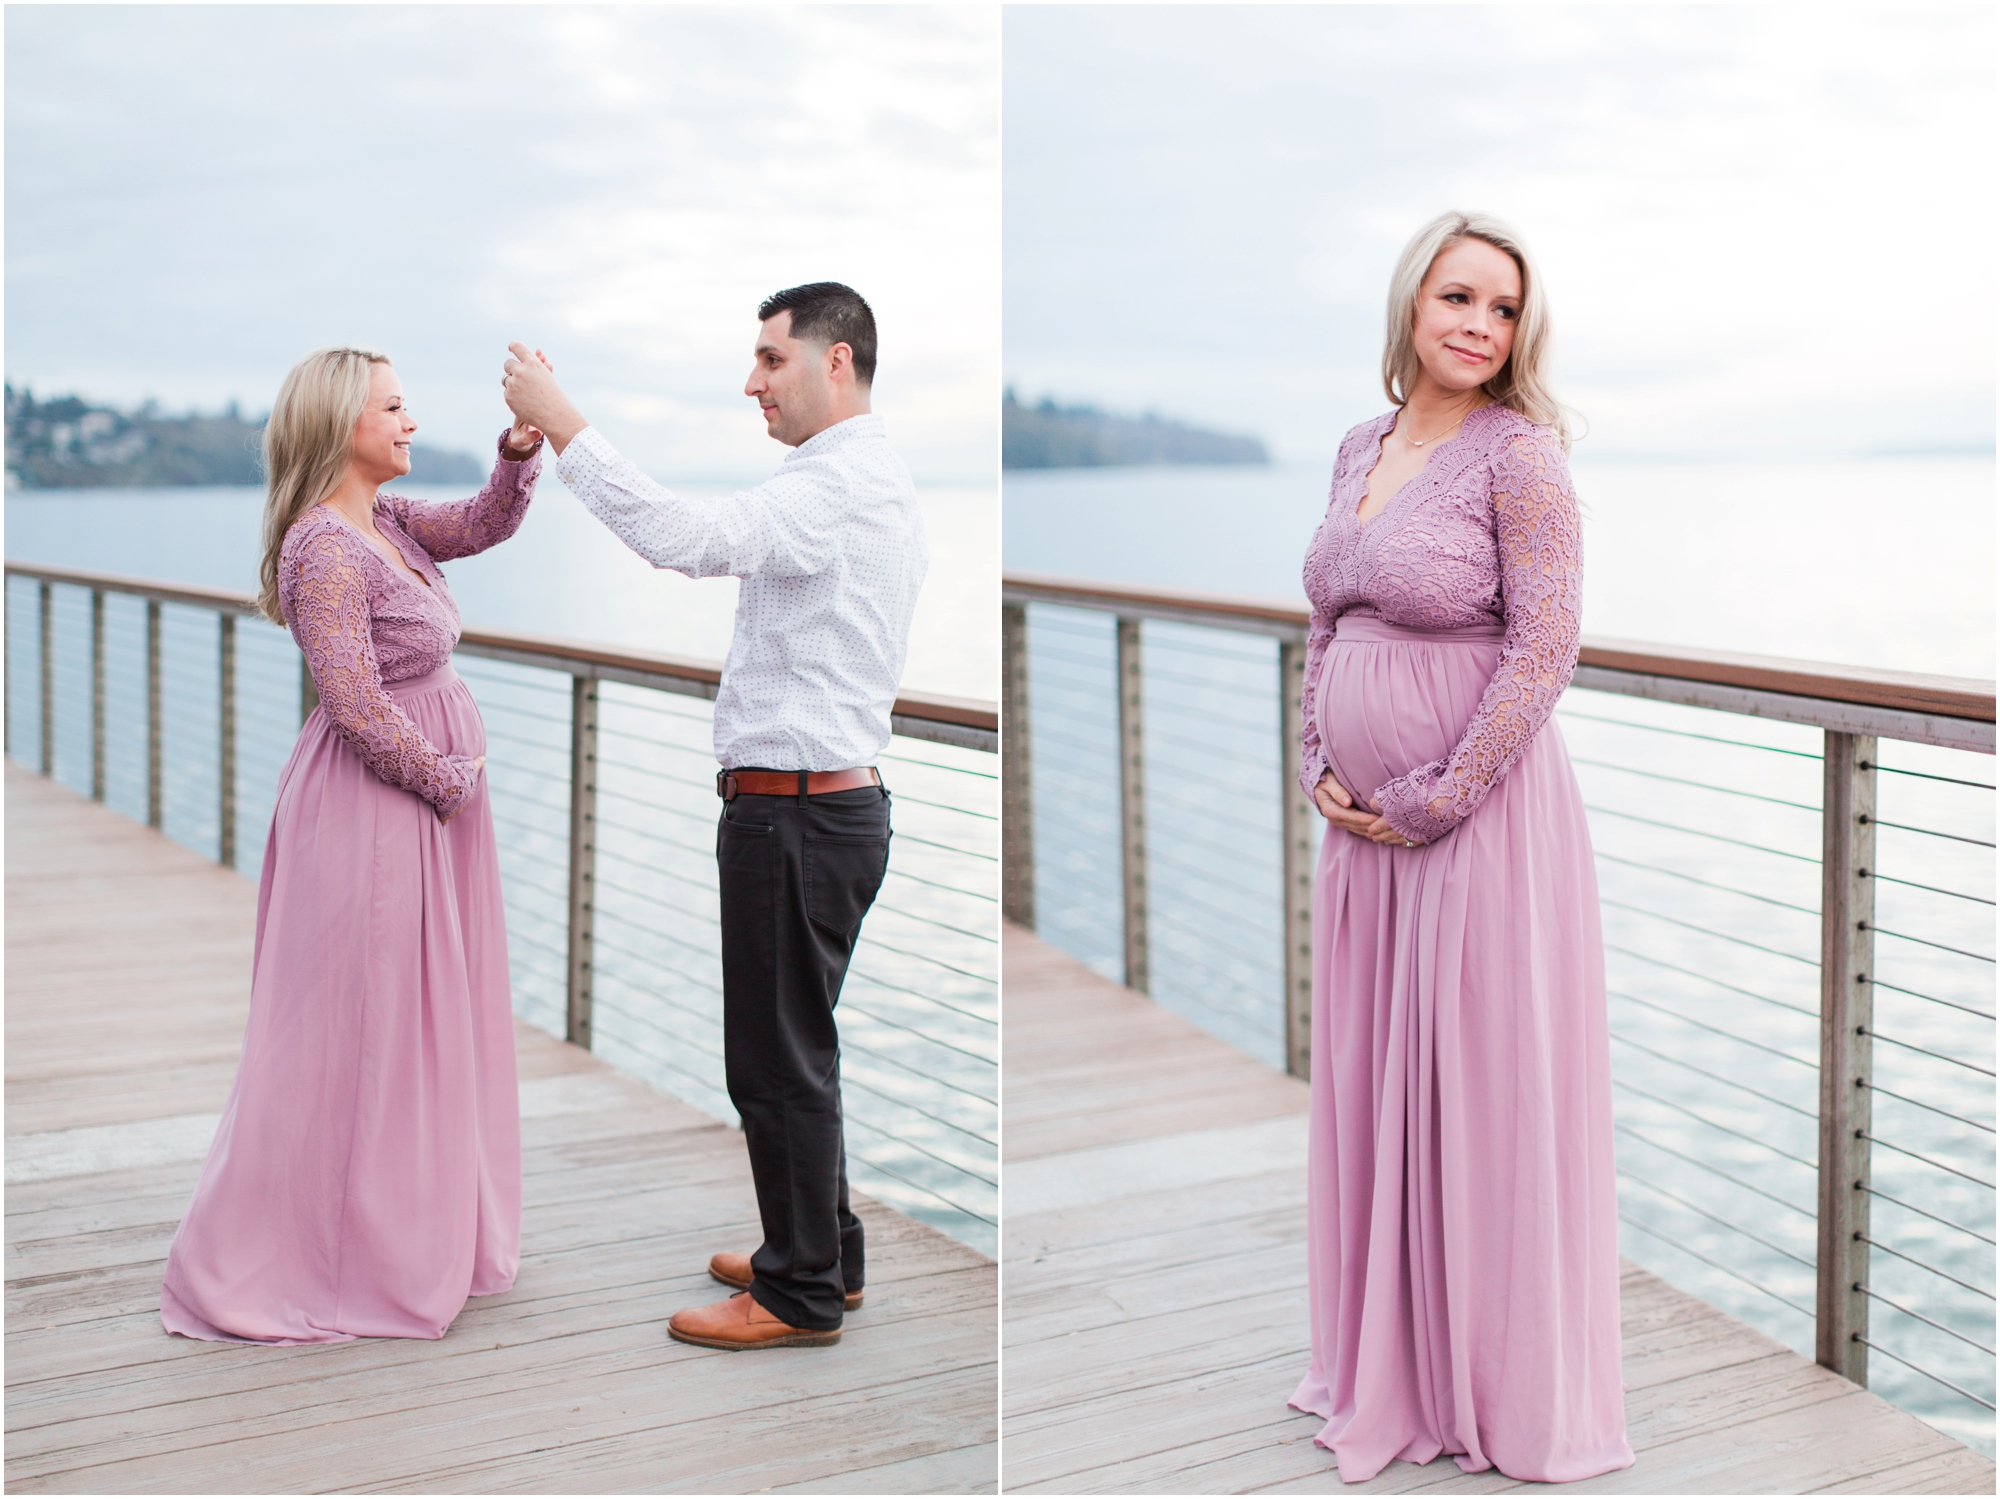 Maternity photos by Briana Calderon Photography based in the Greater Seattle & Tacoma, WA_0972.jpg